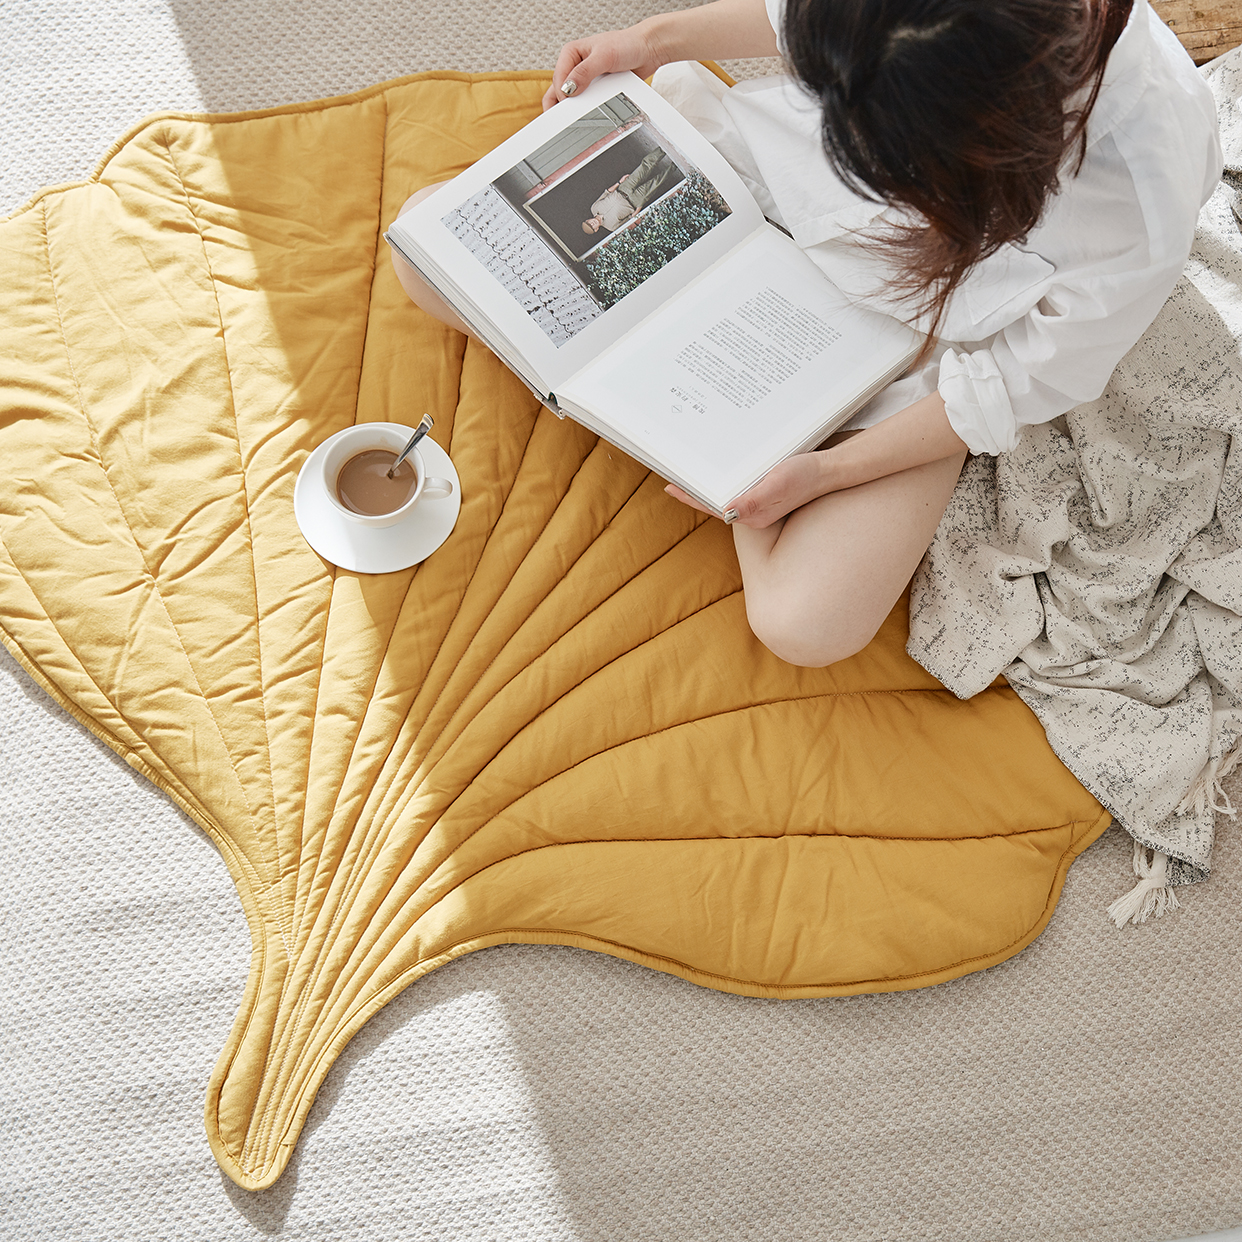 Nordic Leaf Rug Soft Cotton Floor Mat Rugs Baby Kids Bedroom Nursery Decor Carpet Blanket Living Room Home New Year Decoration